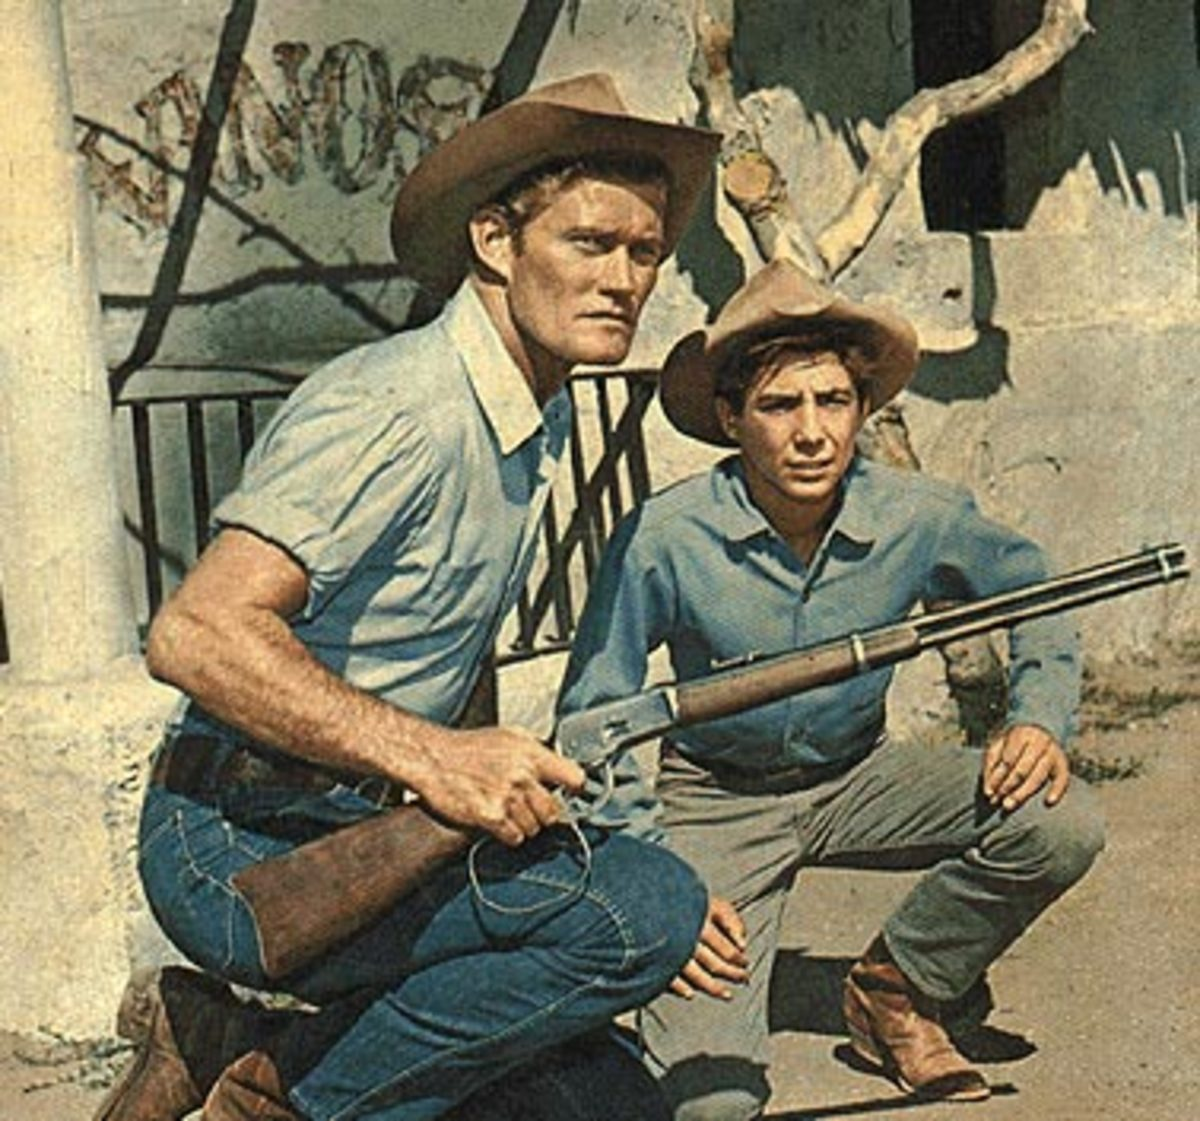 """The Rifleman"" starring Chuck Connors as Lucas McCain with his custom large loop lever Winchester Model 1892 chambered for the black powder .44-40 cartridge with his son, Mark."